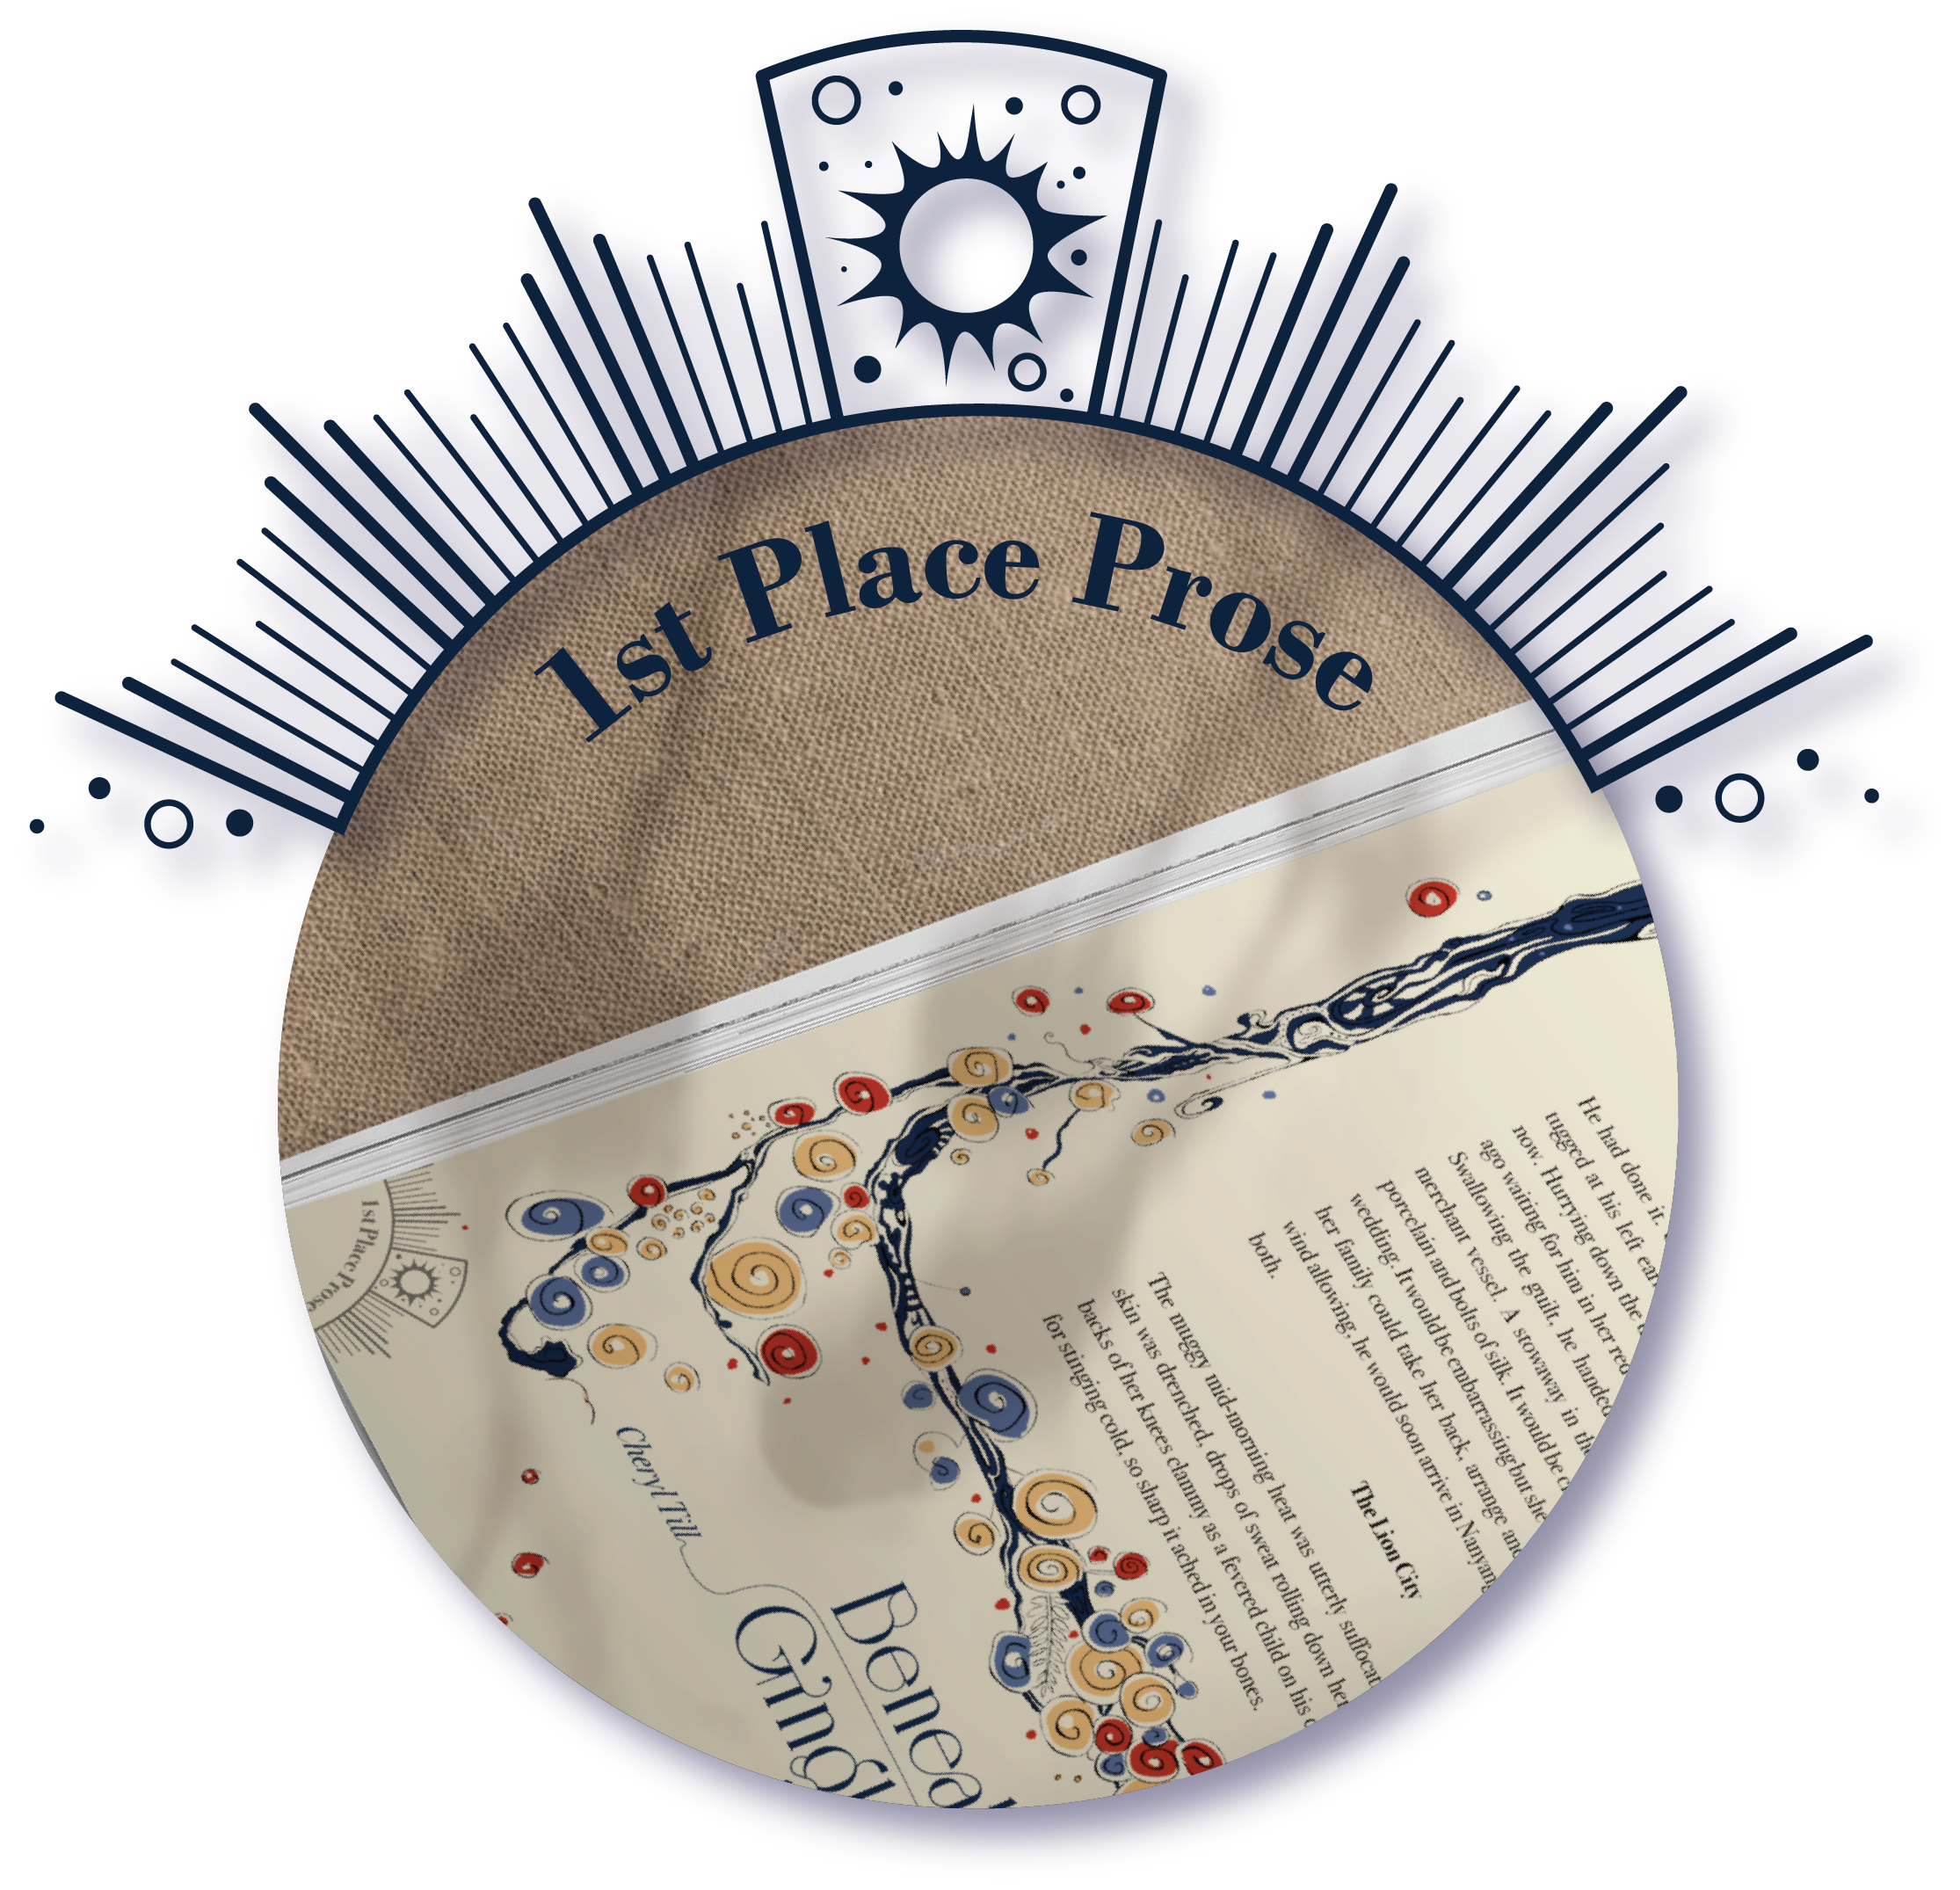 The prize-winner logo for 1st place poetry, showing the journal page for 'Beneath the Gingko Tree' by Cheryl Till.